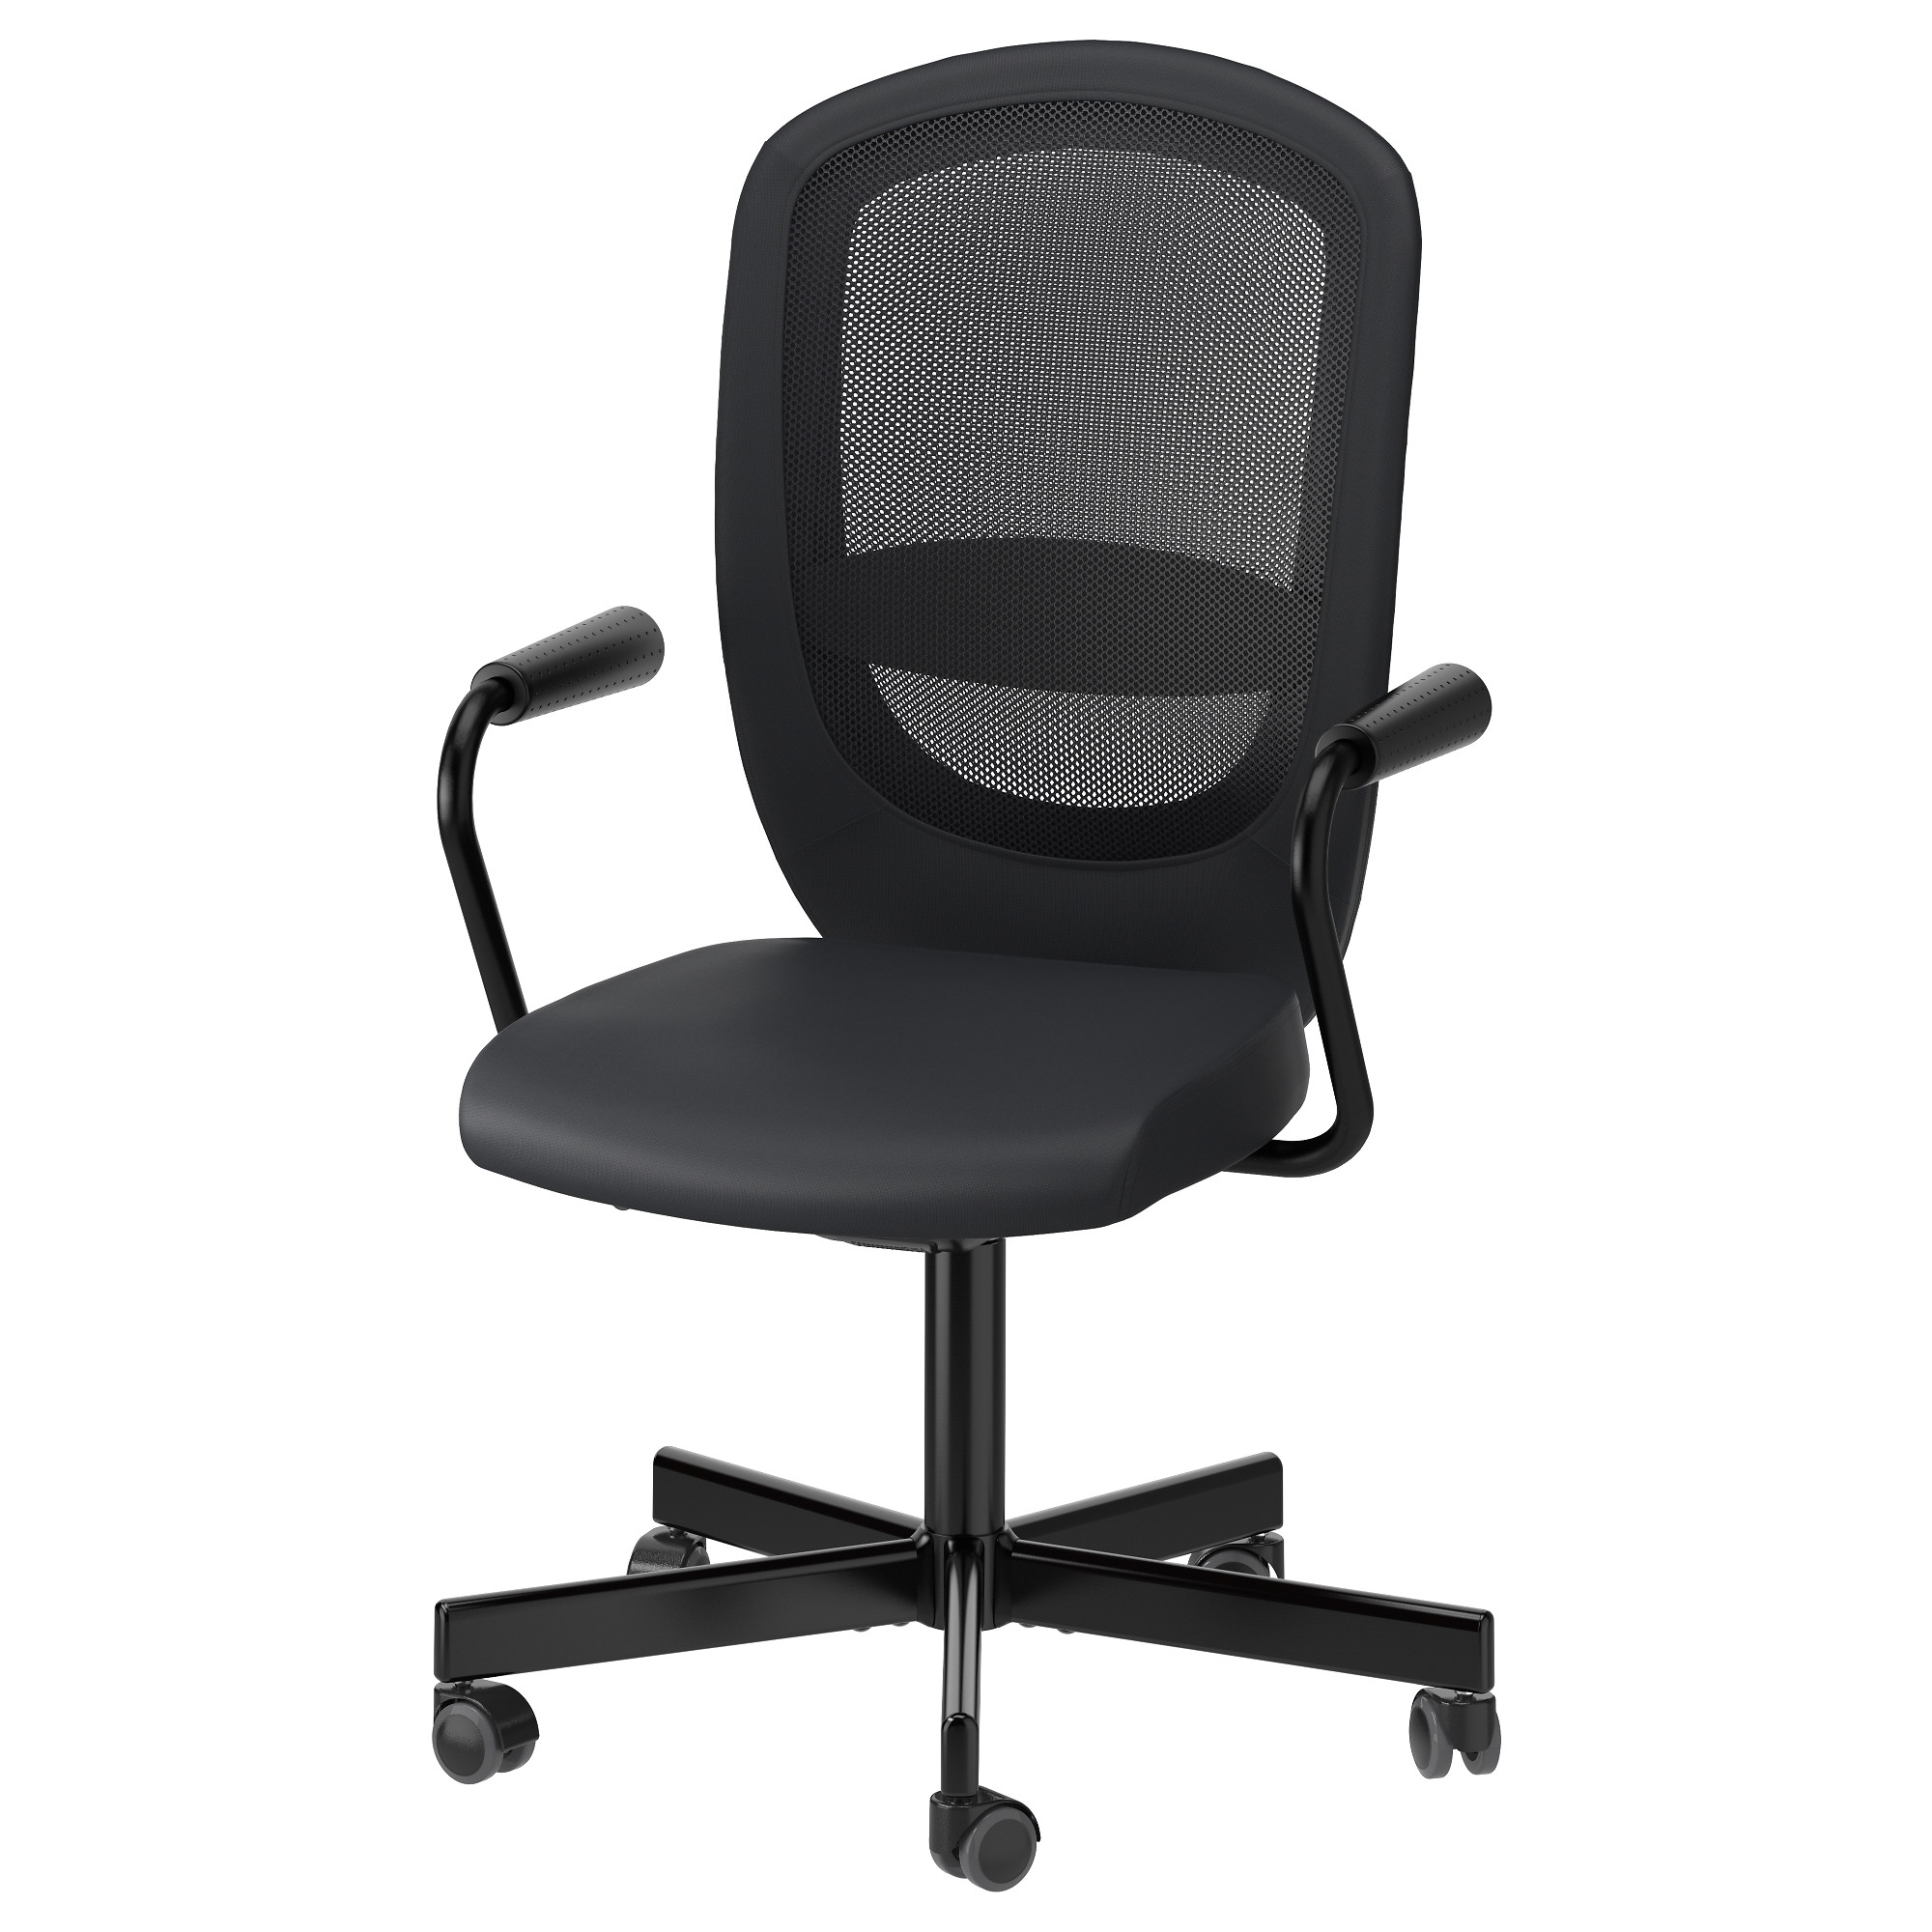 Black and white office chair - Flintan Nominell Swivel Chair With Armrests Black Tested For 242 Lb 8 Oz